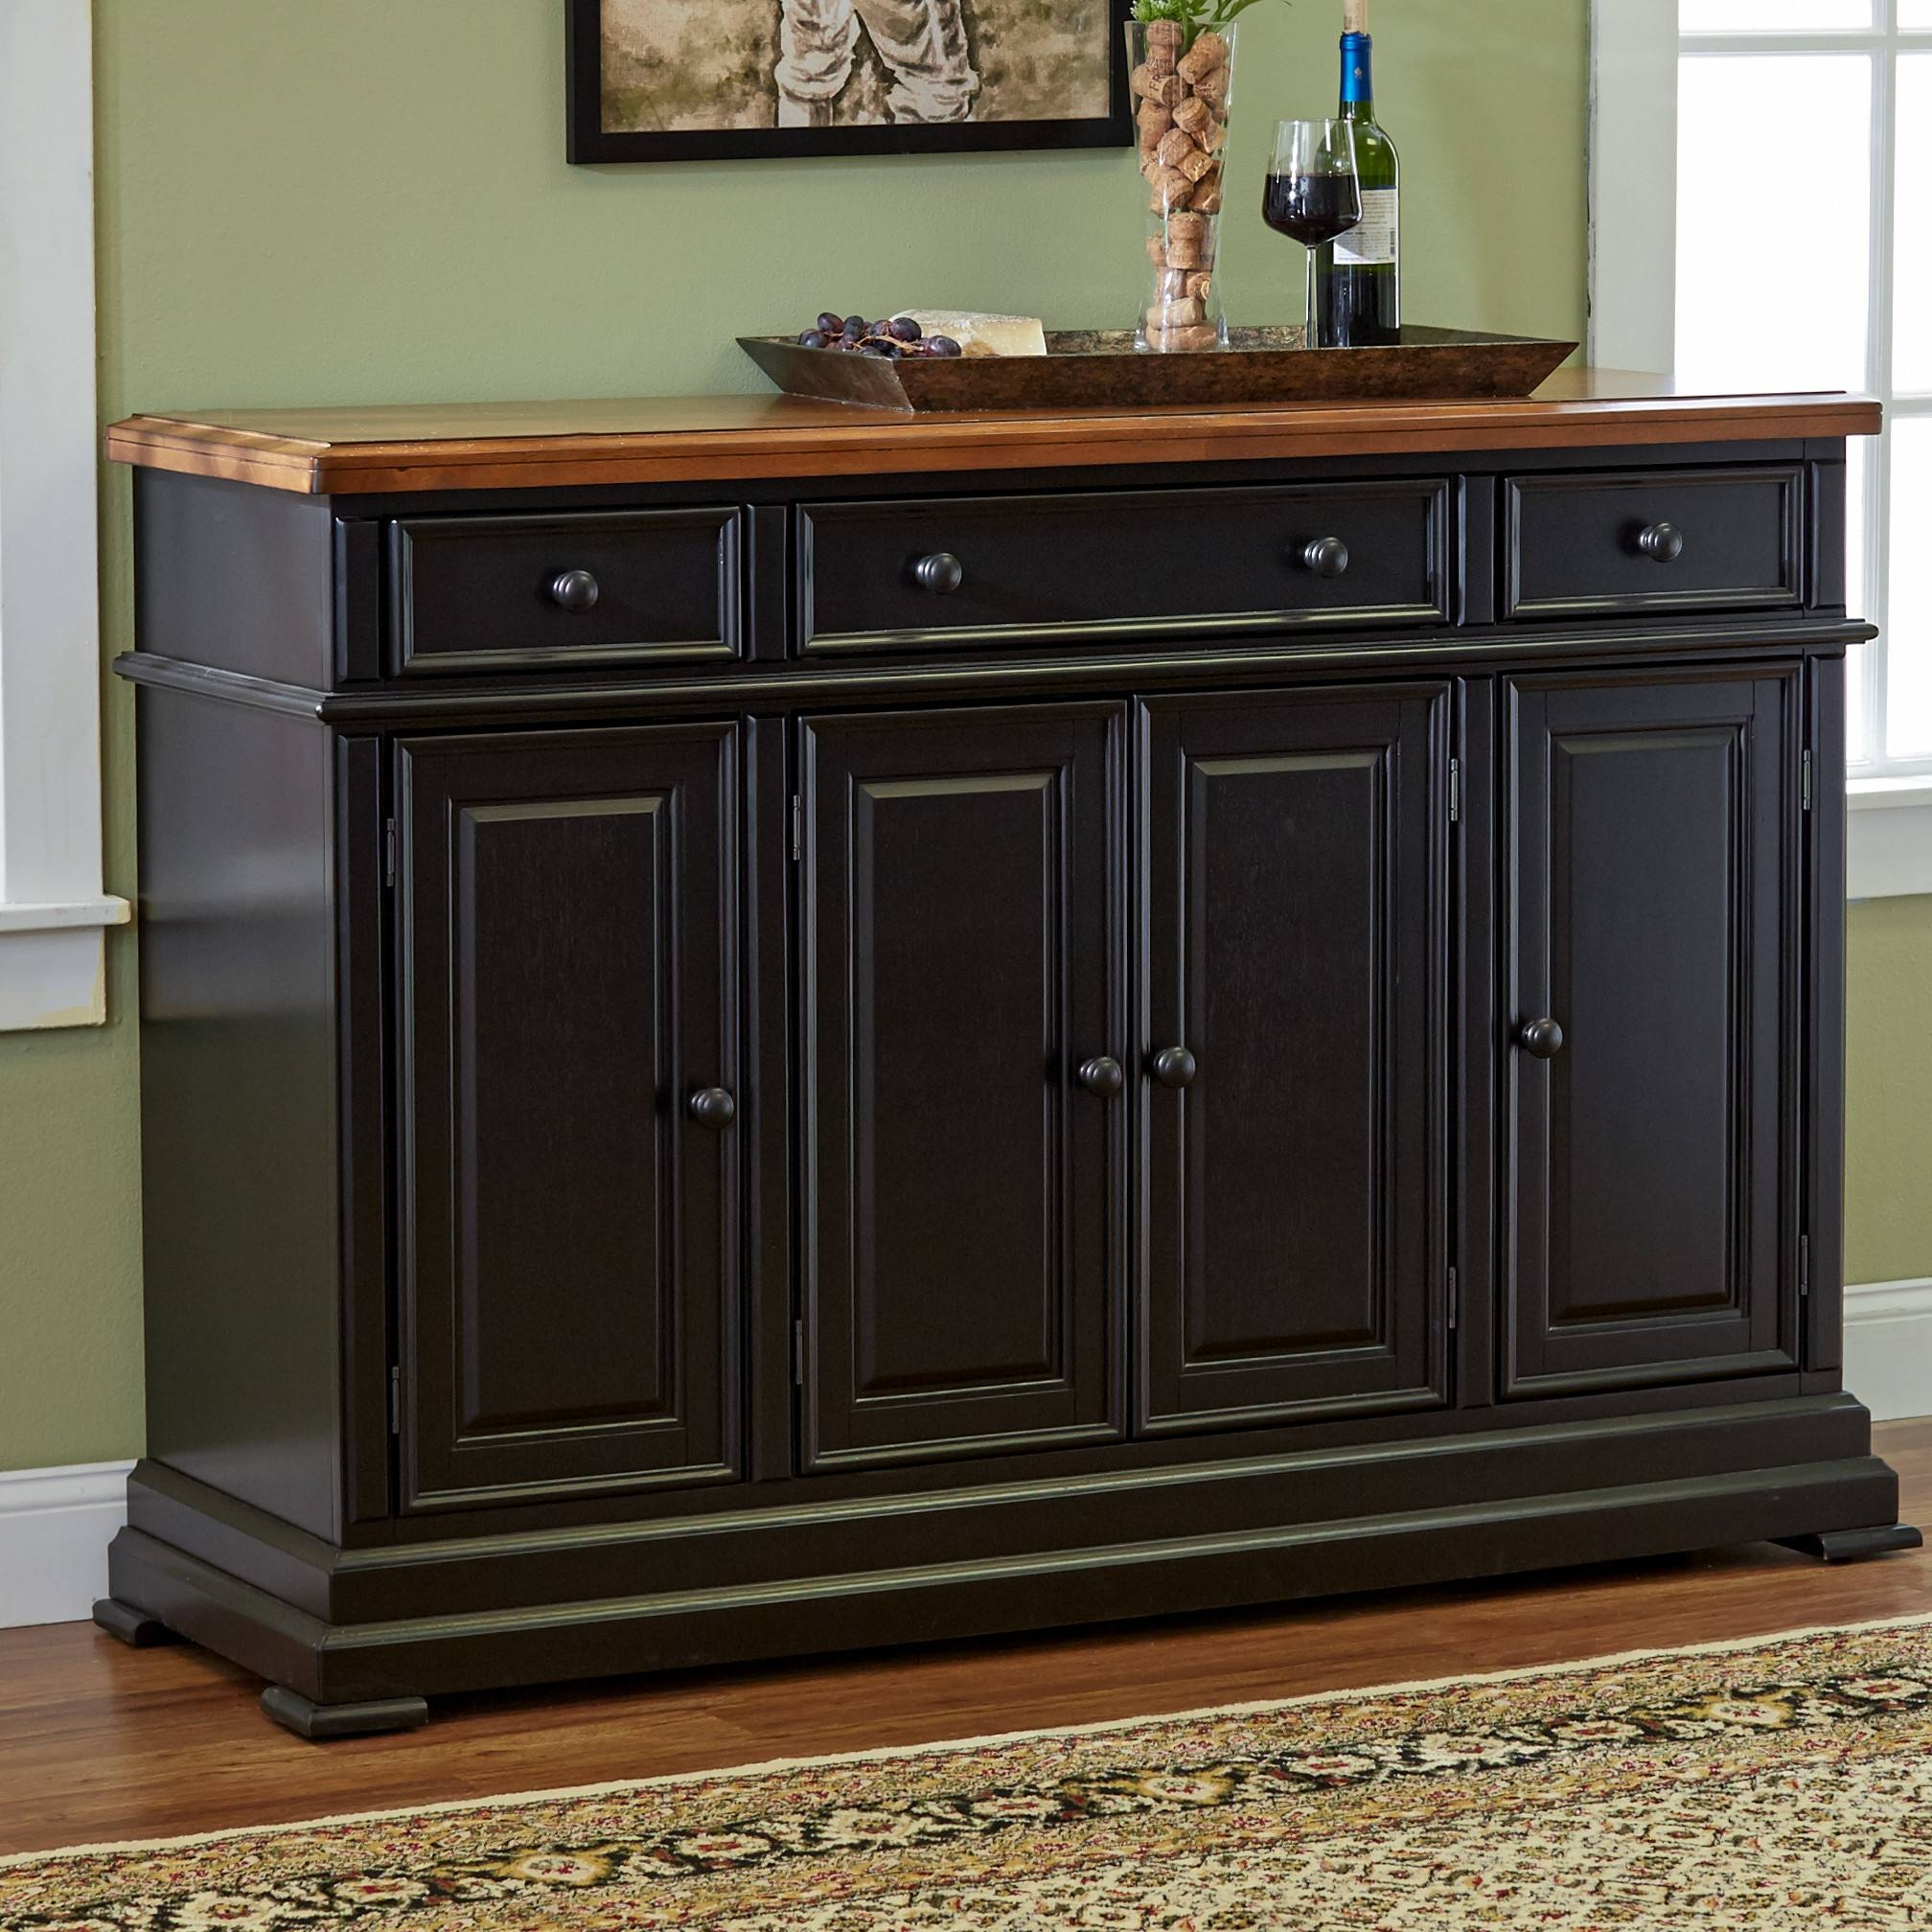 Dining Room Buffet Cabinet Sideboards Buffets Storage Servers 17 with regard to Dining Room With Sideboards (Image 4 of 15)